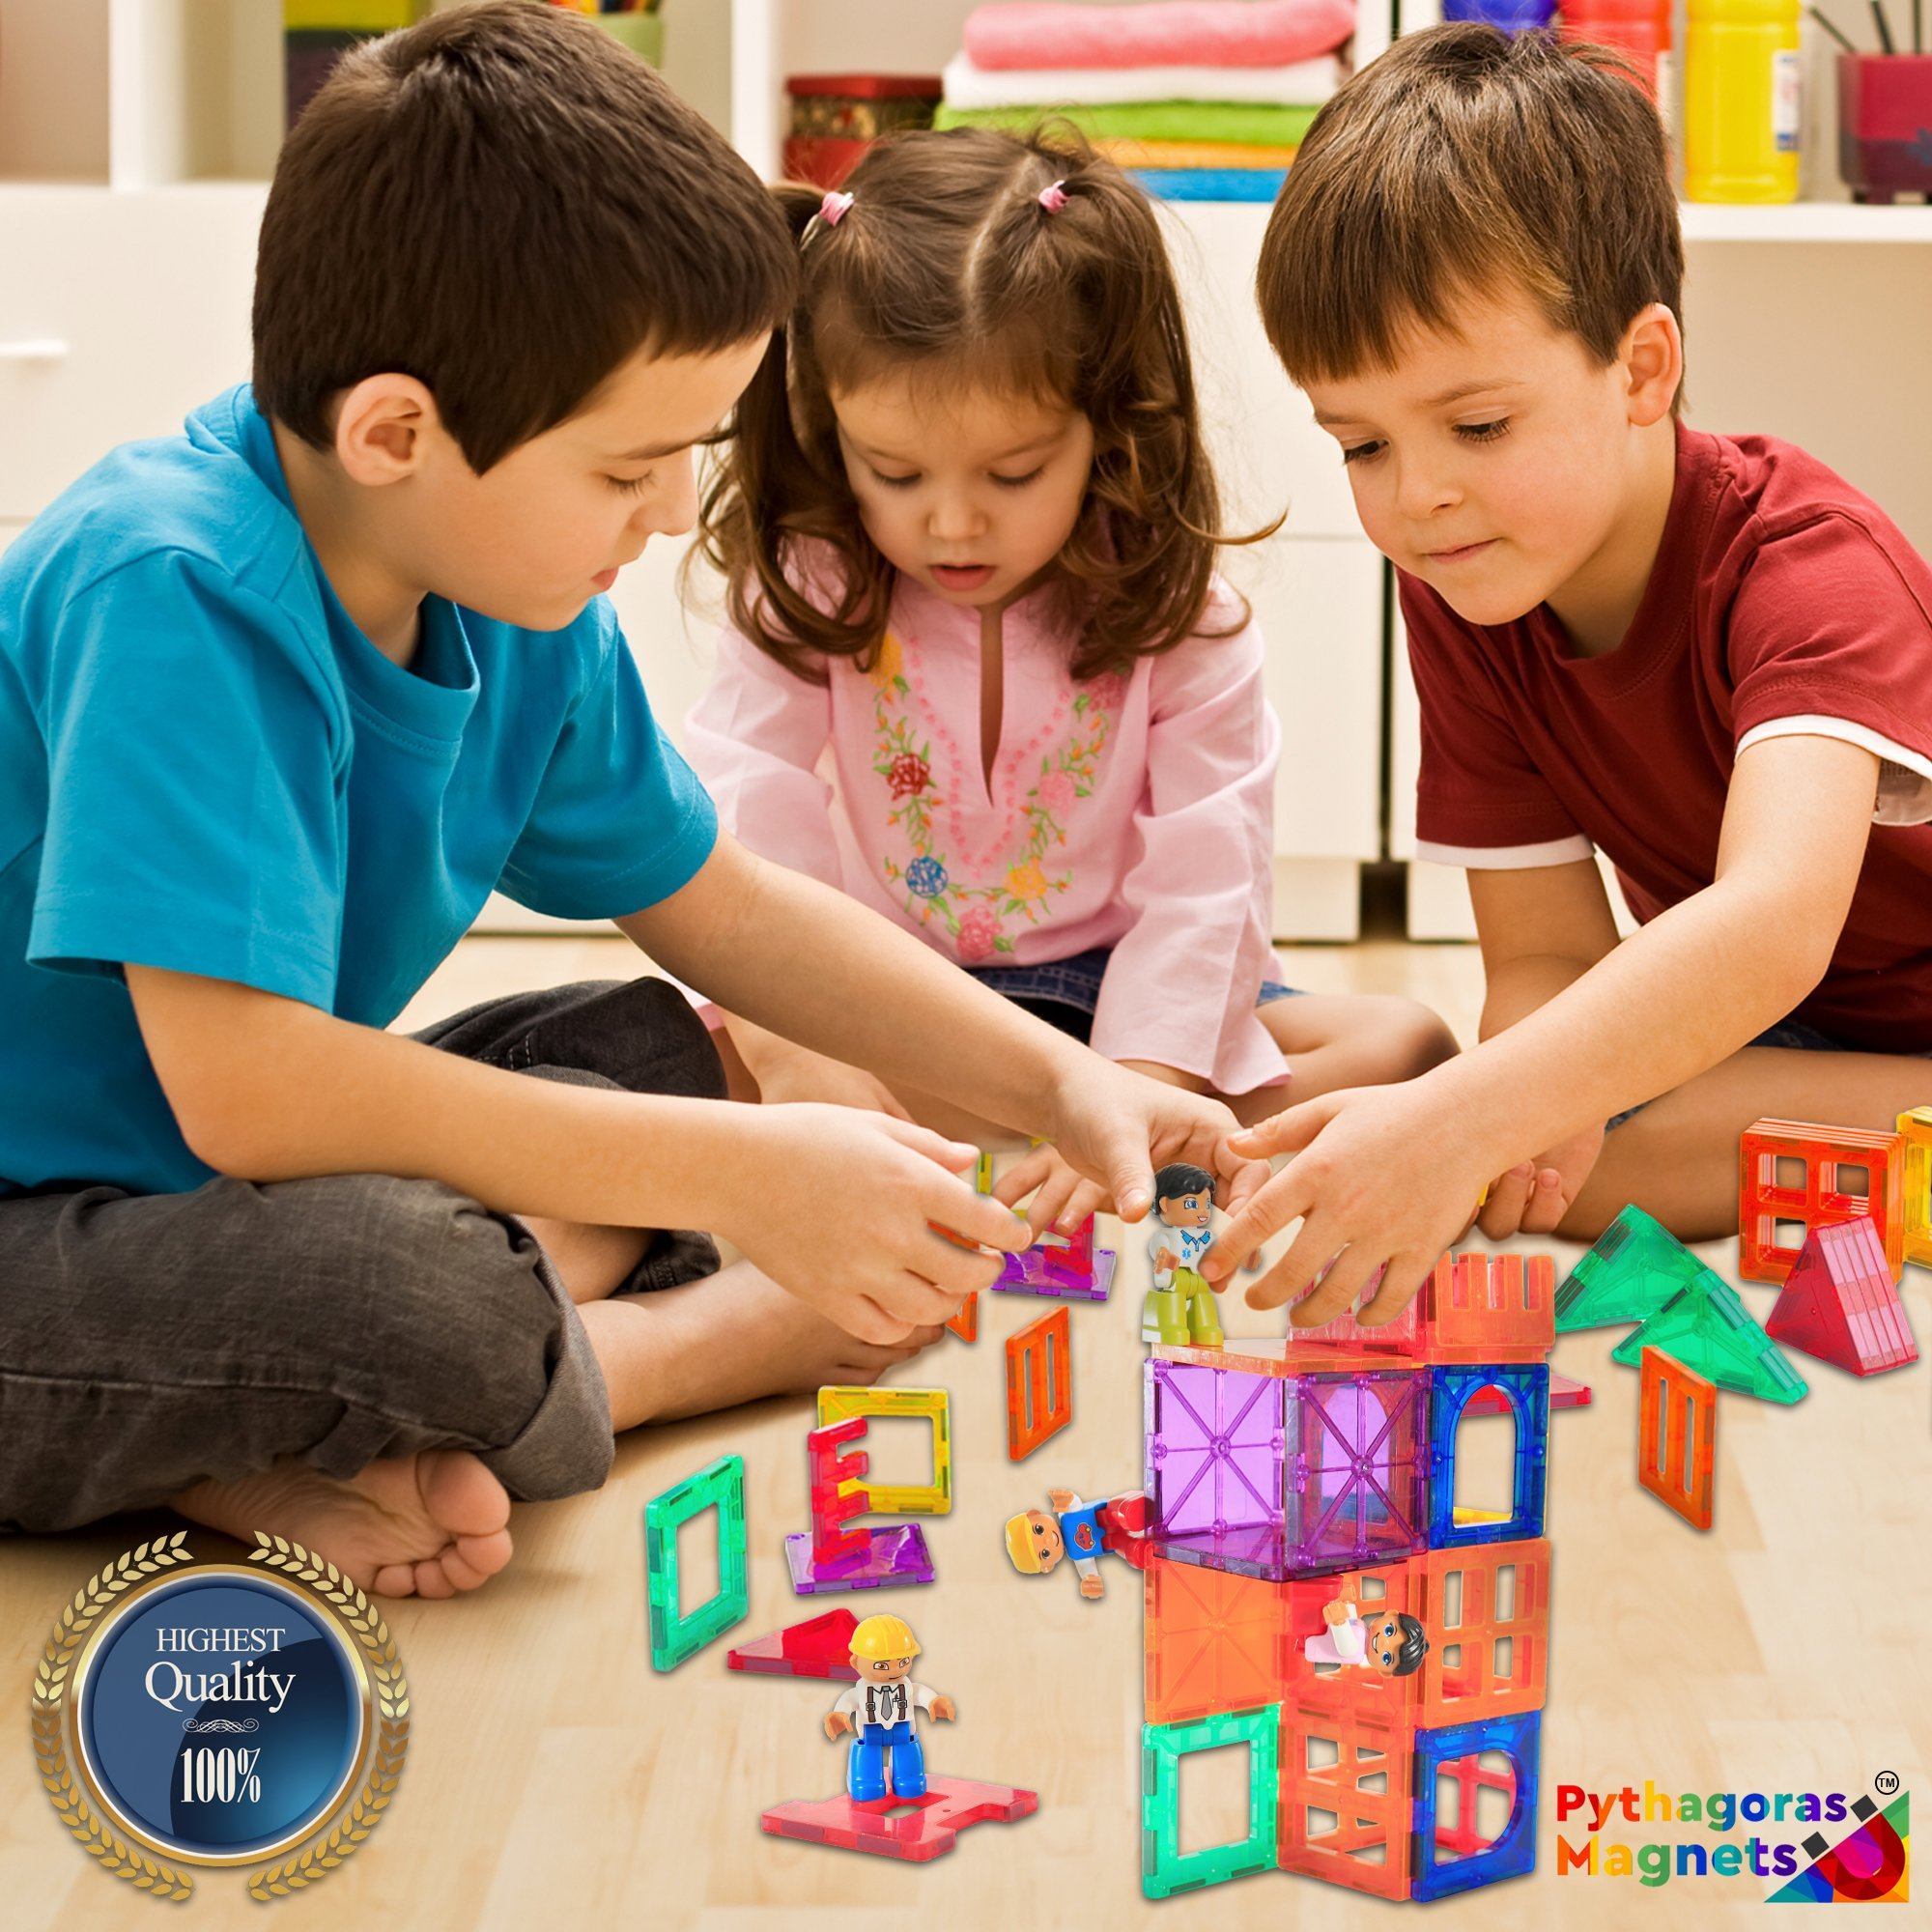 Magnetic Figures Set of 4 -Toddlers Action Toy People, Magnetic Tiles Expansion Pack for Boys and Girls - Banker Father Educational STEM Toys Add on Sets for Magnetic Blocks (3 Pack Banker Set) by Pythagoras Magnets (Image #4)